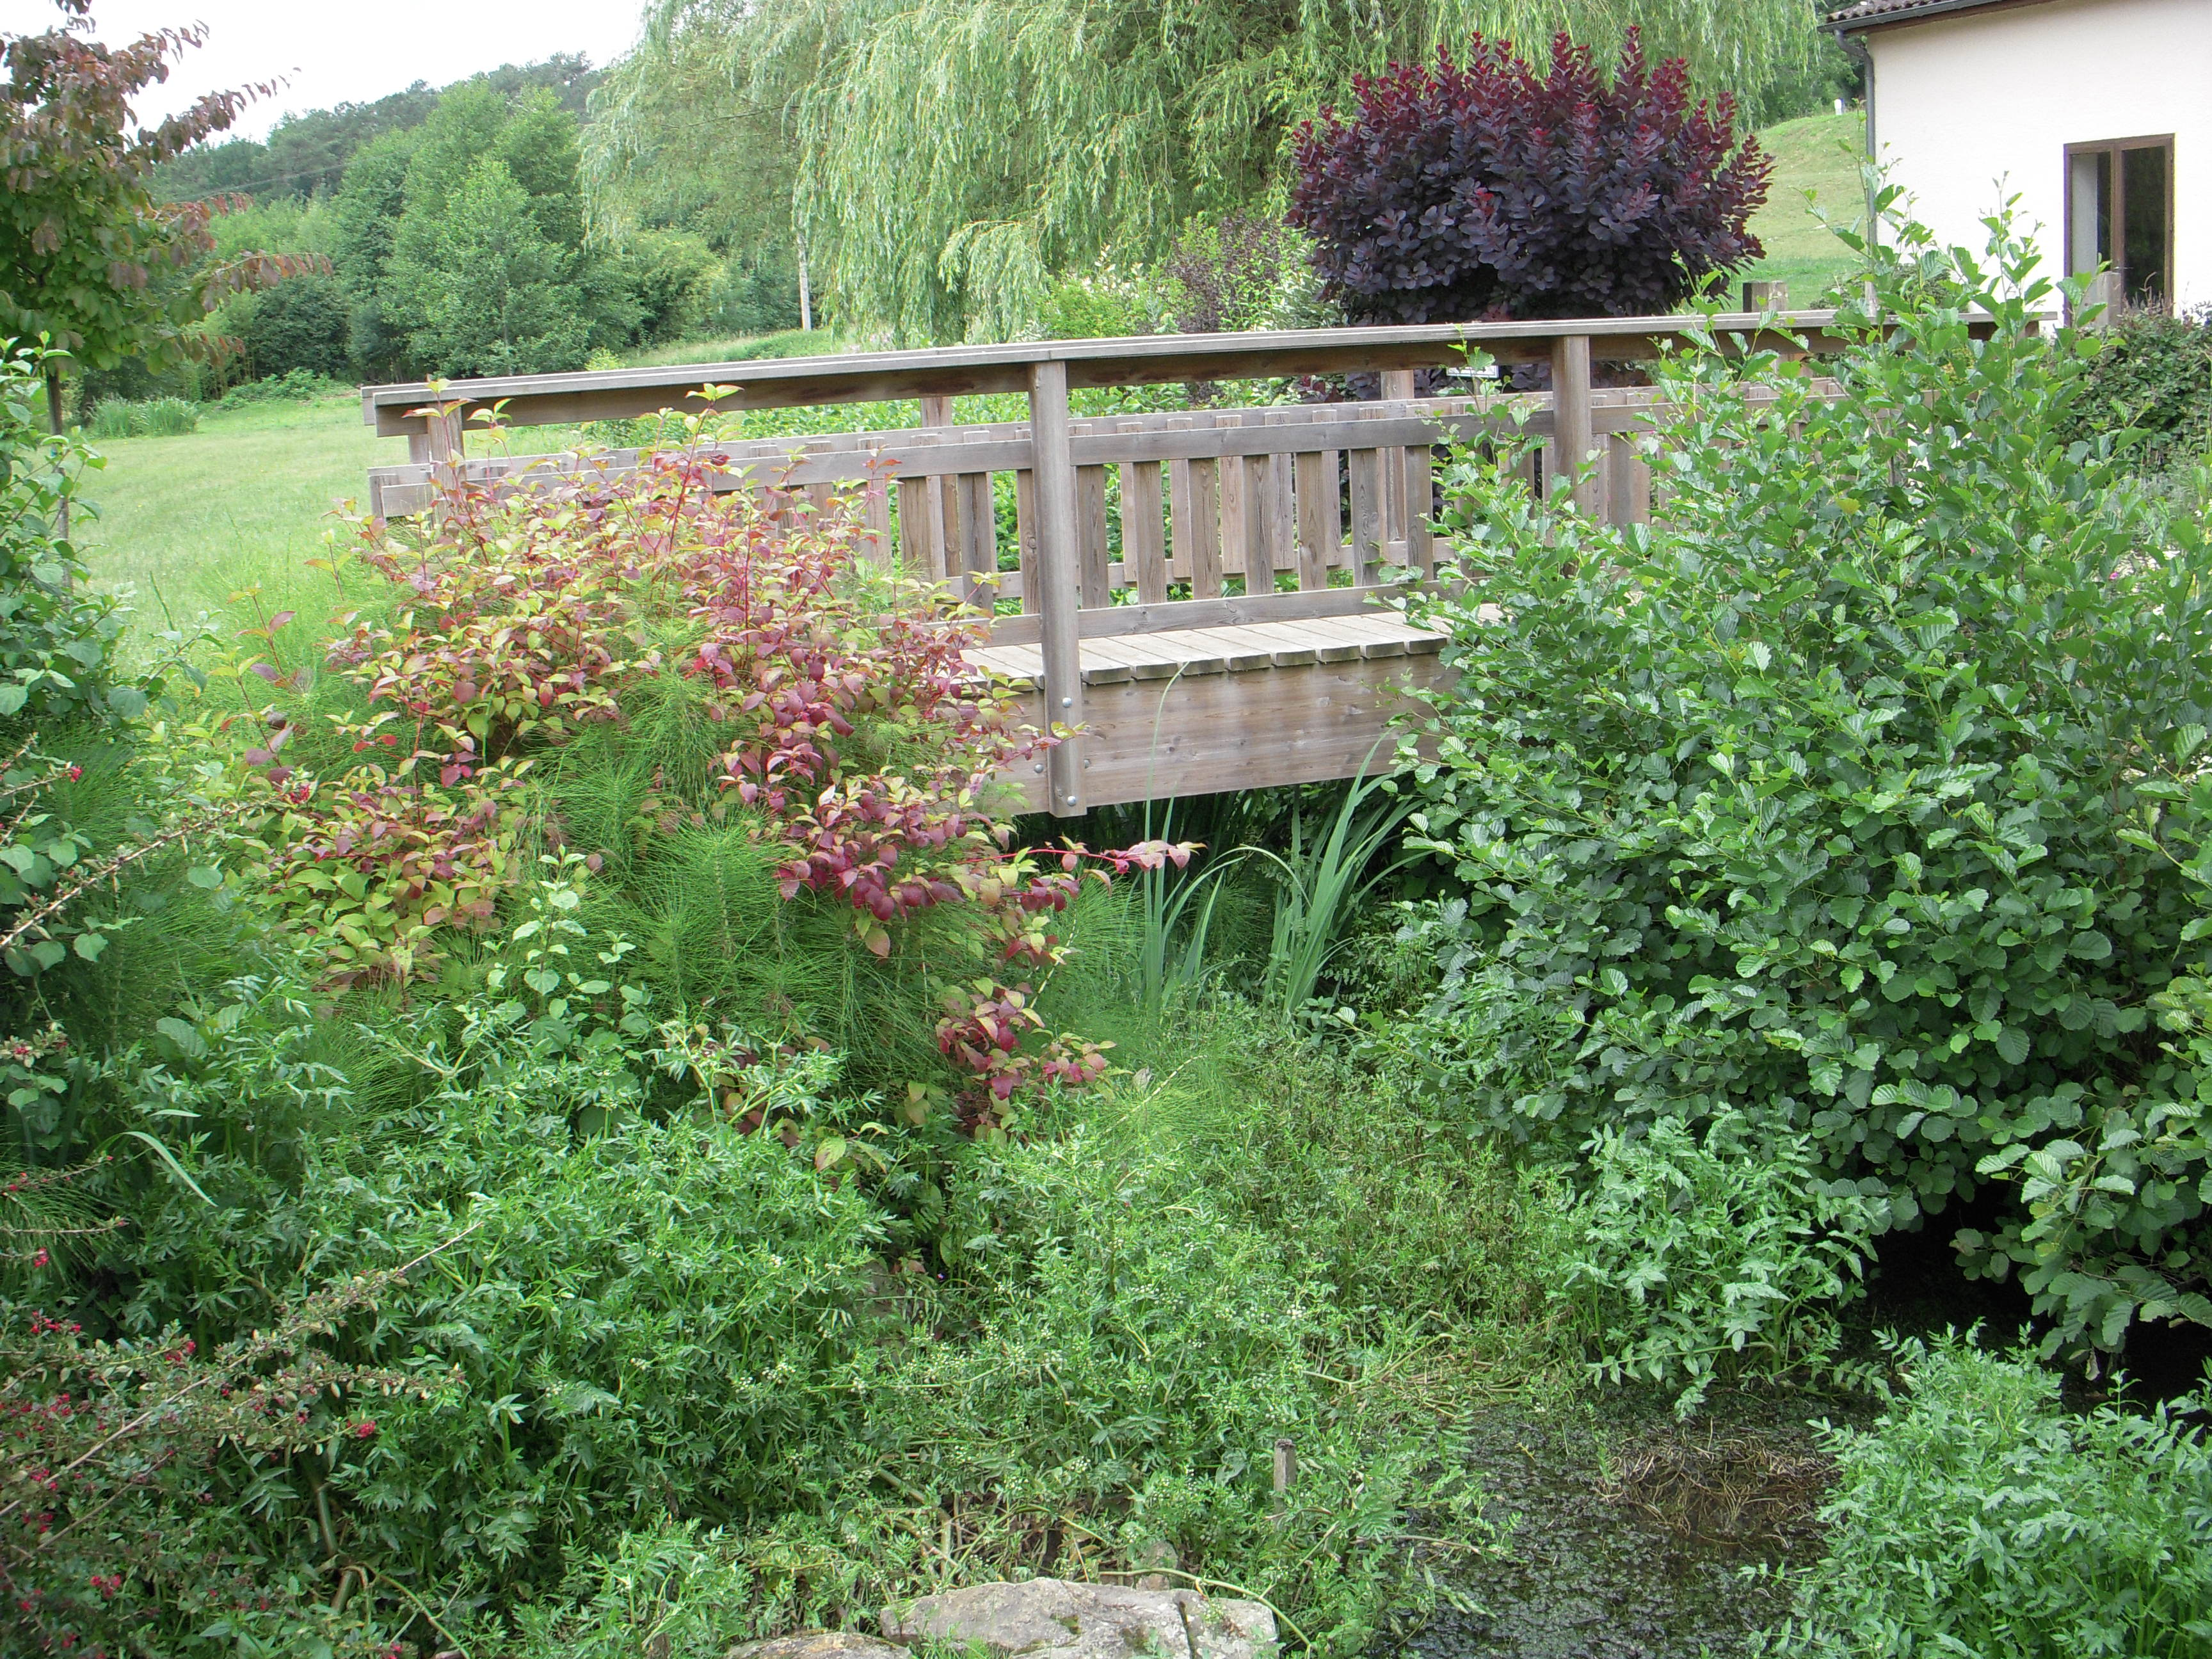 Bed and Breakfast in SAINT JEAN D'EYRAUD - Vakantie verhuur advertentie no 26613 Foto no 0